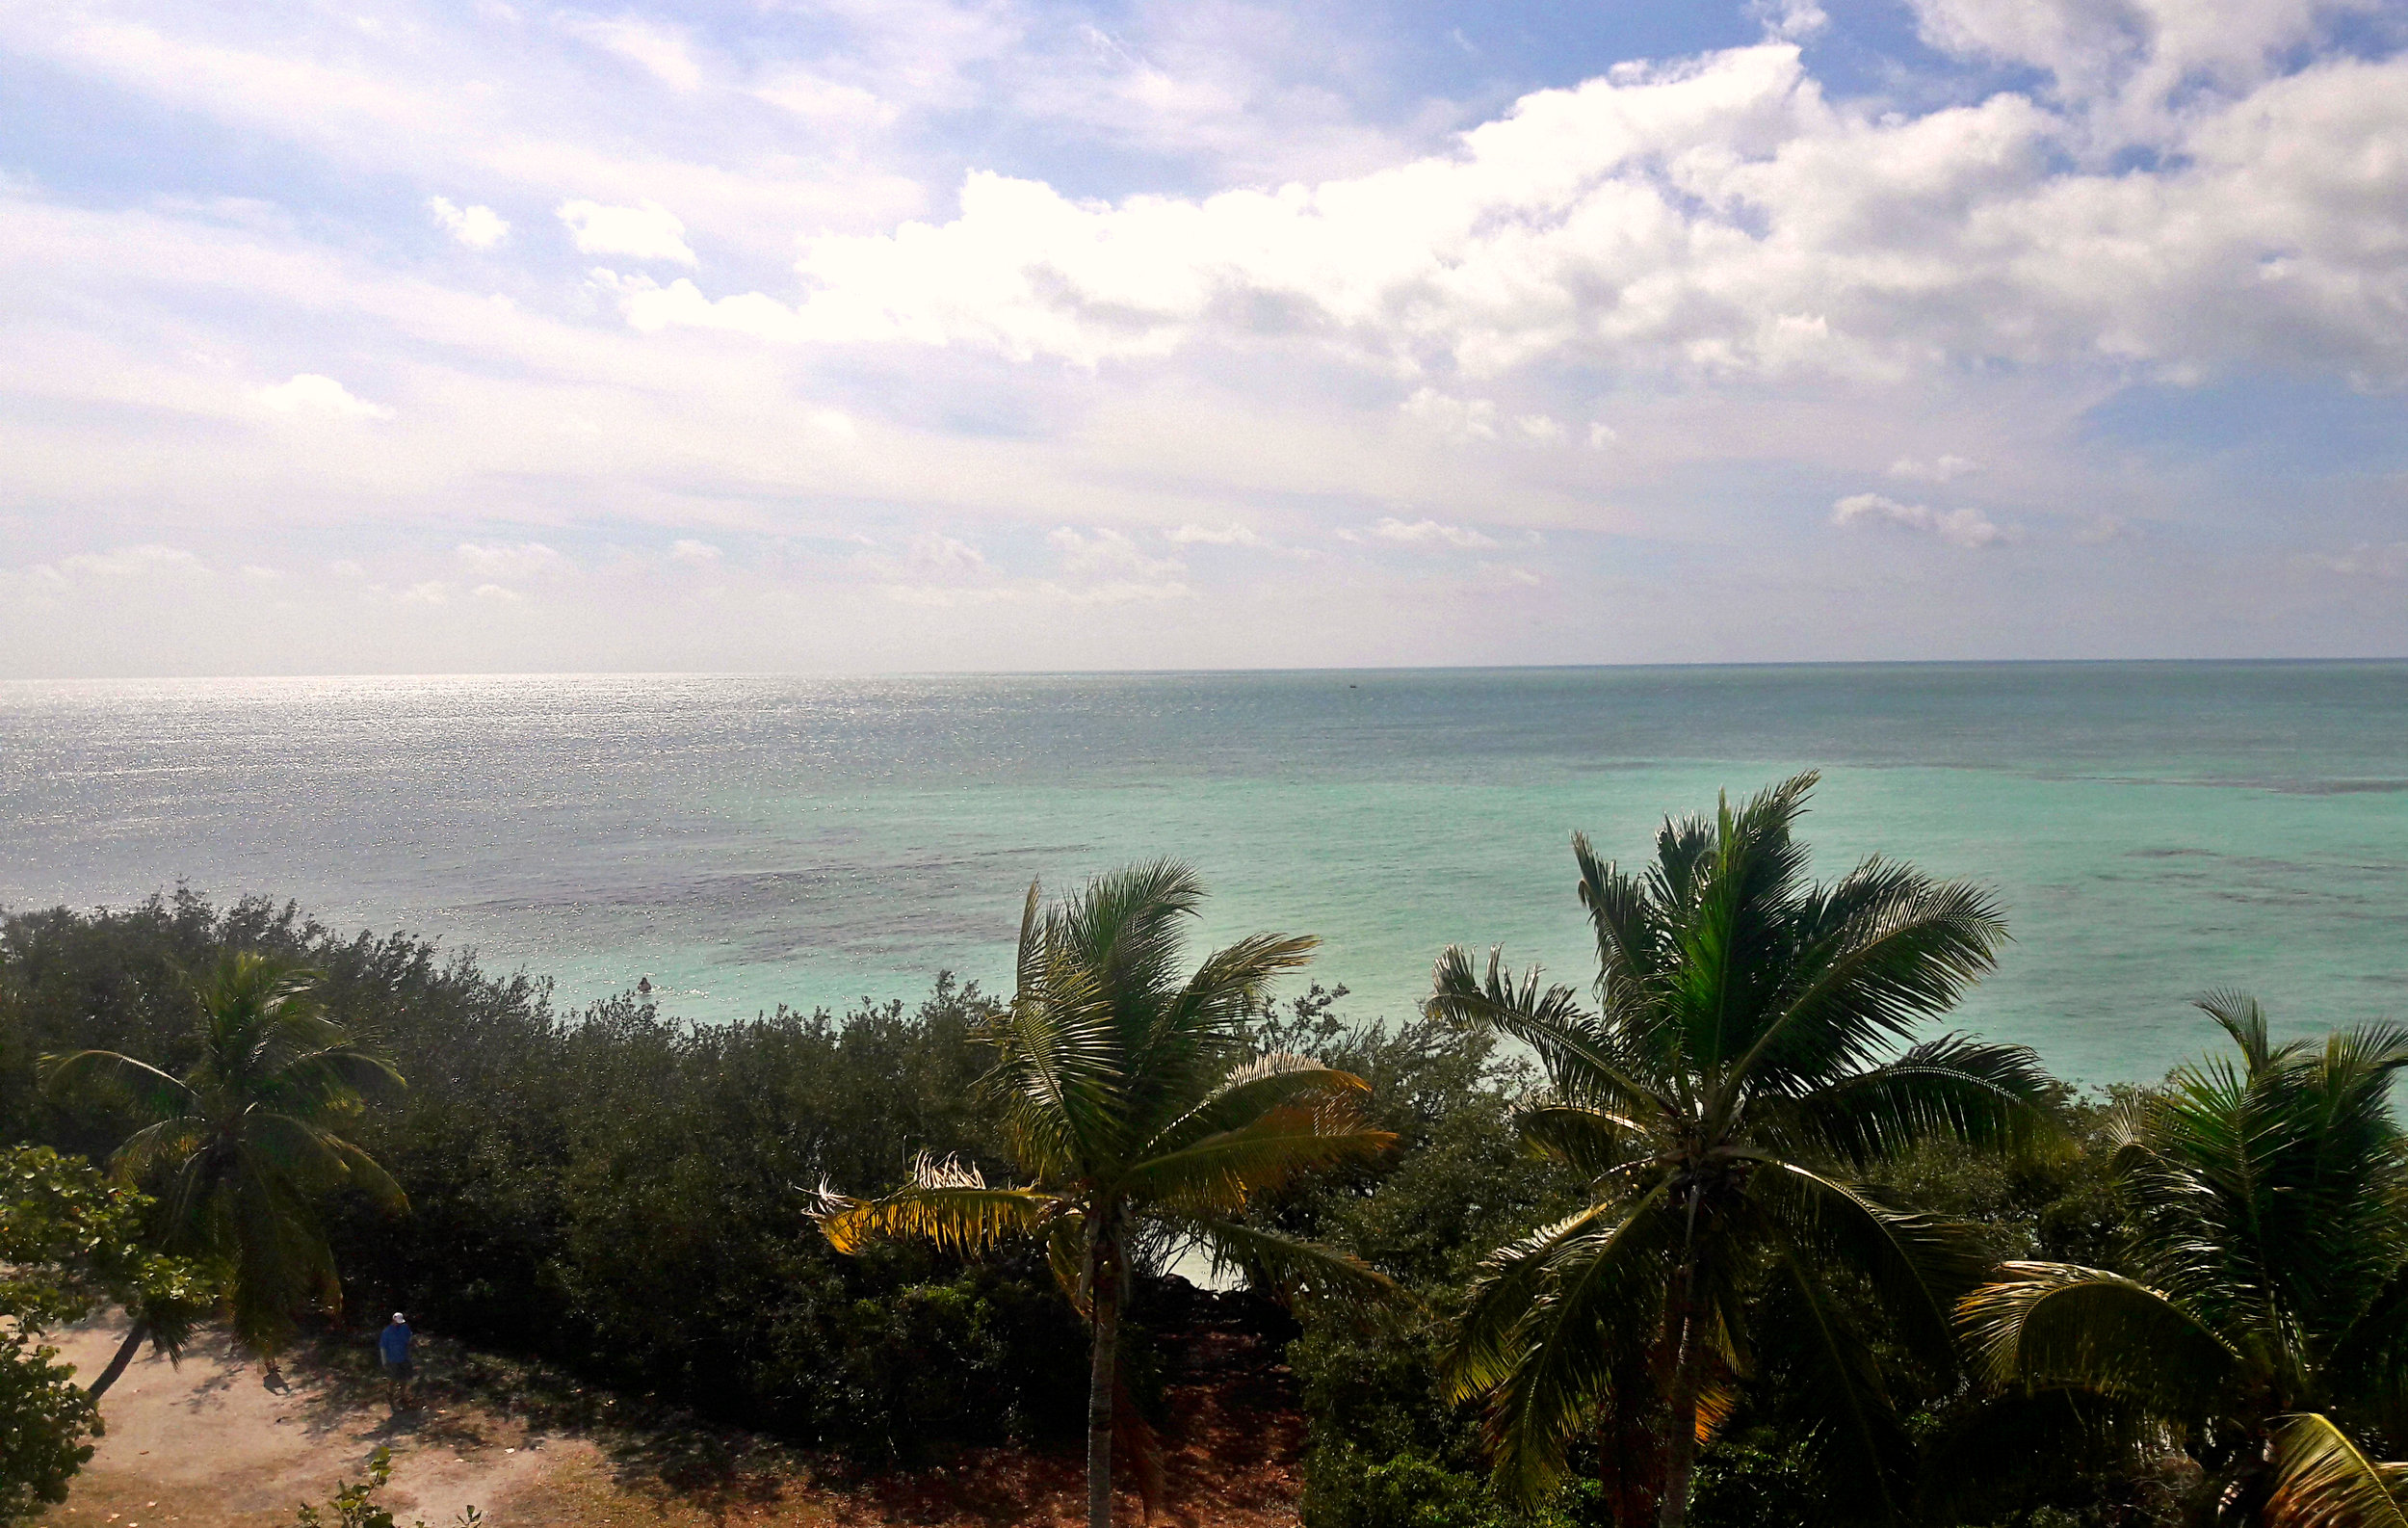 Beautiful beach view of the Atlantic from Bahia Honda State Park